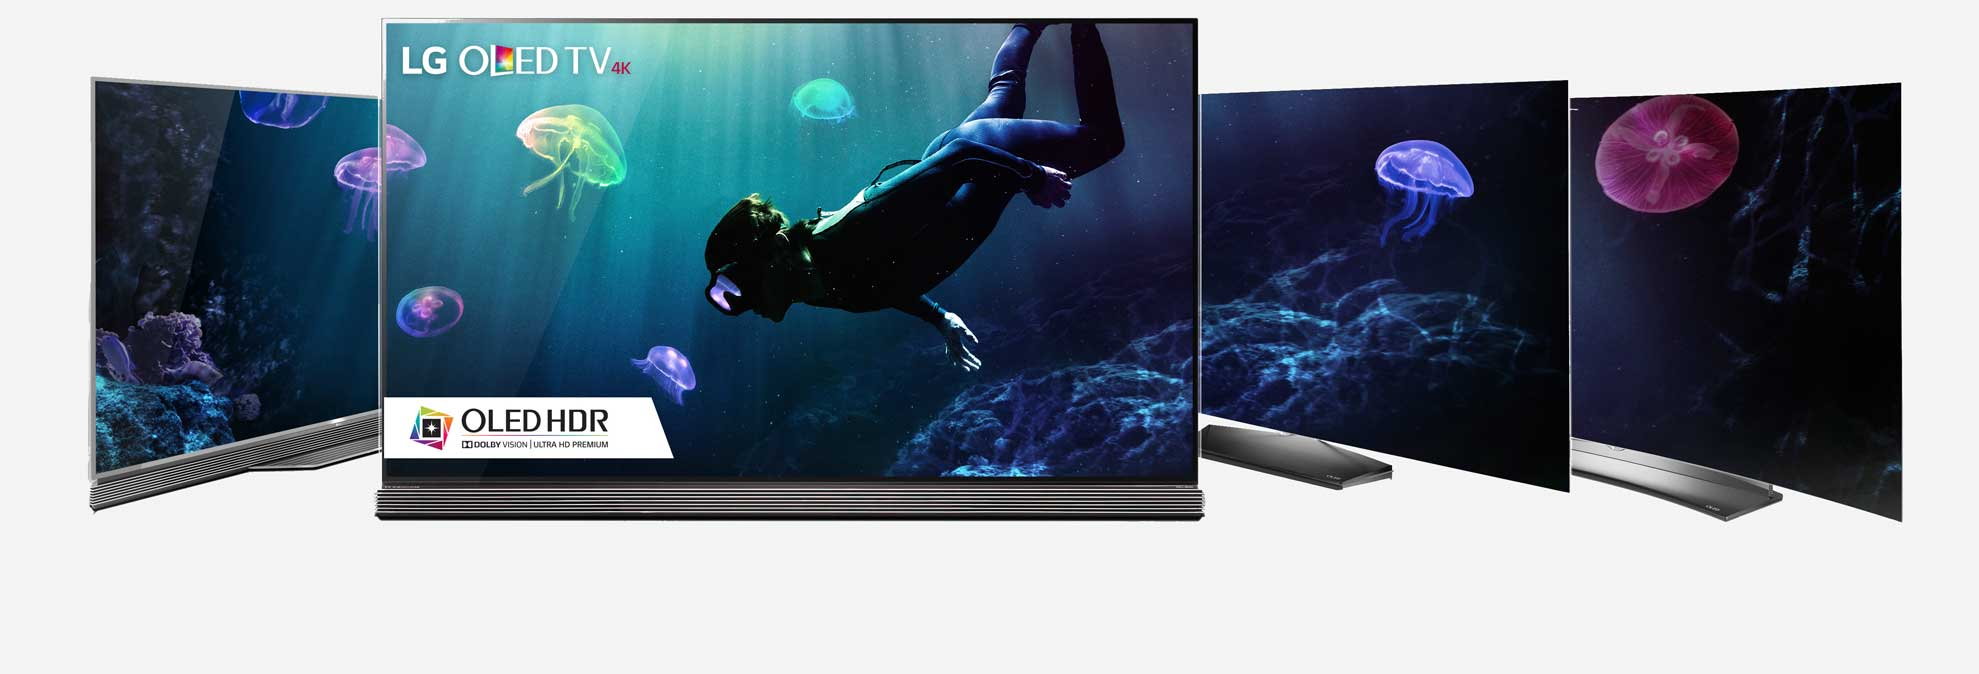 CR Electronics Hero LG Rolls Out 2016 OLED TV Lineup 05 16 is the $6,000 sony tv really a tech breakthrough? consumer reports  at n-0.co